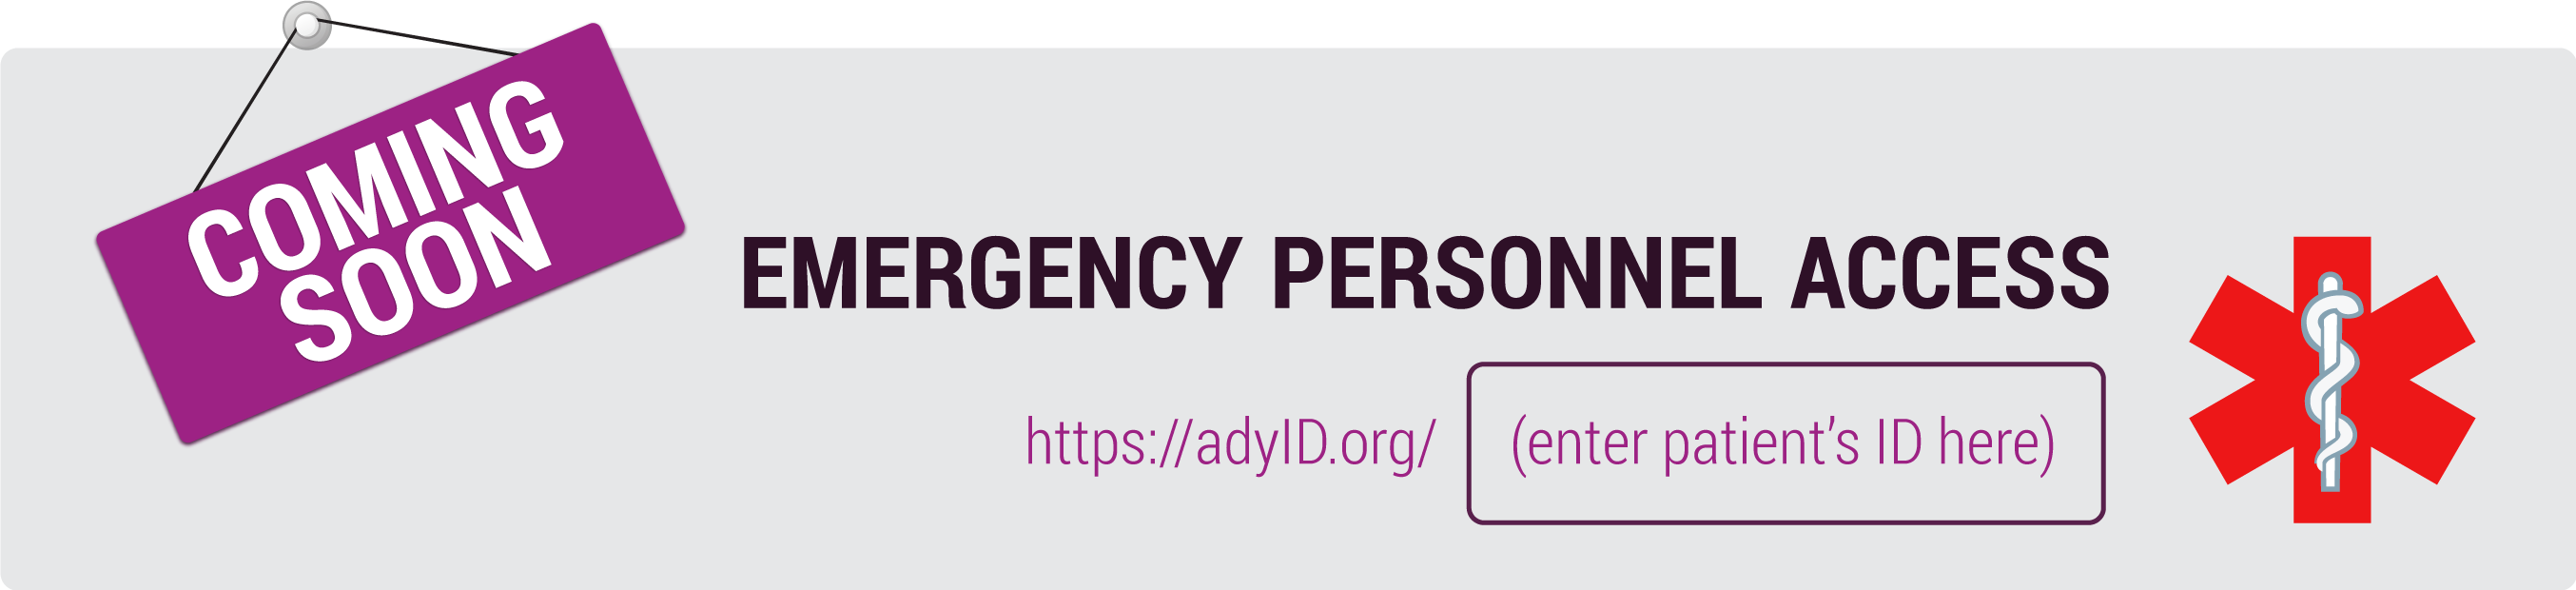 Emergency personnel access